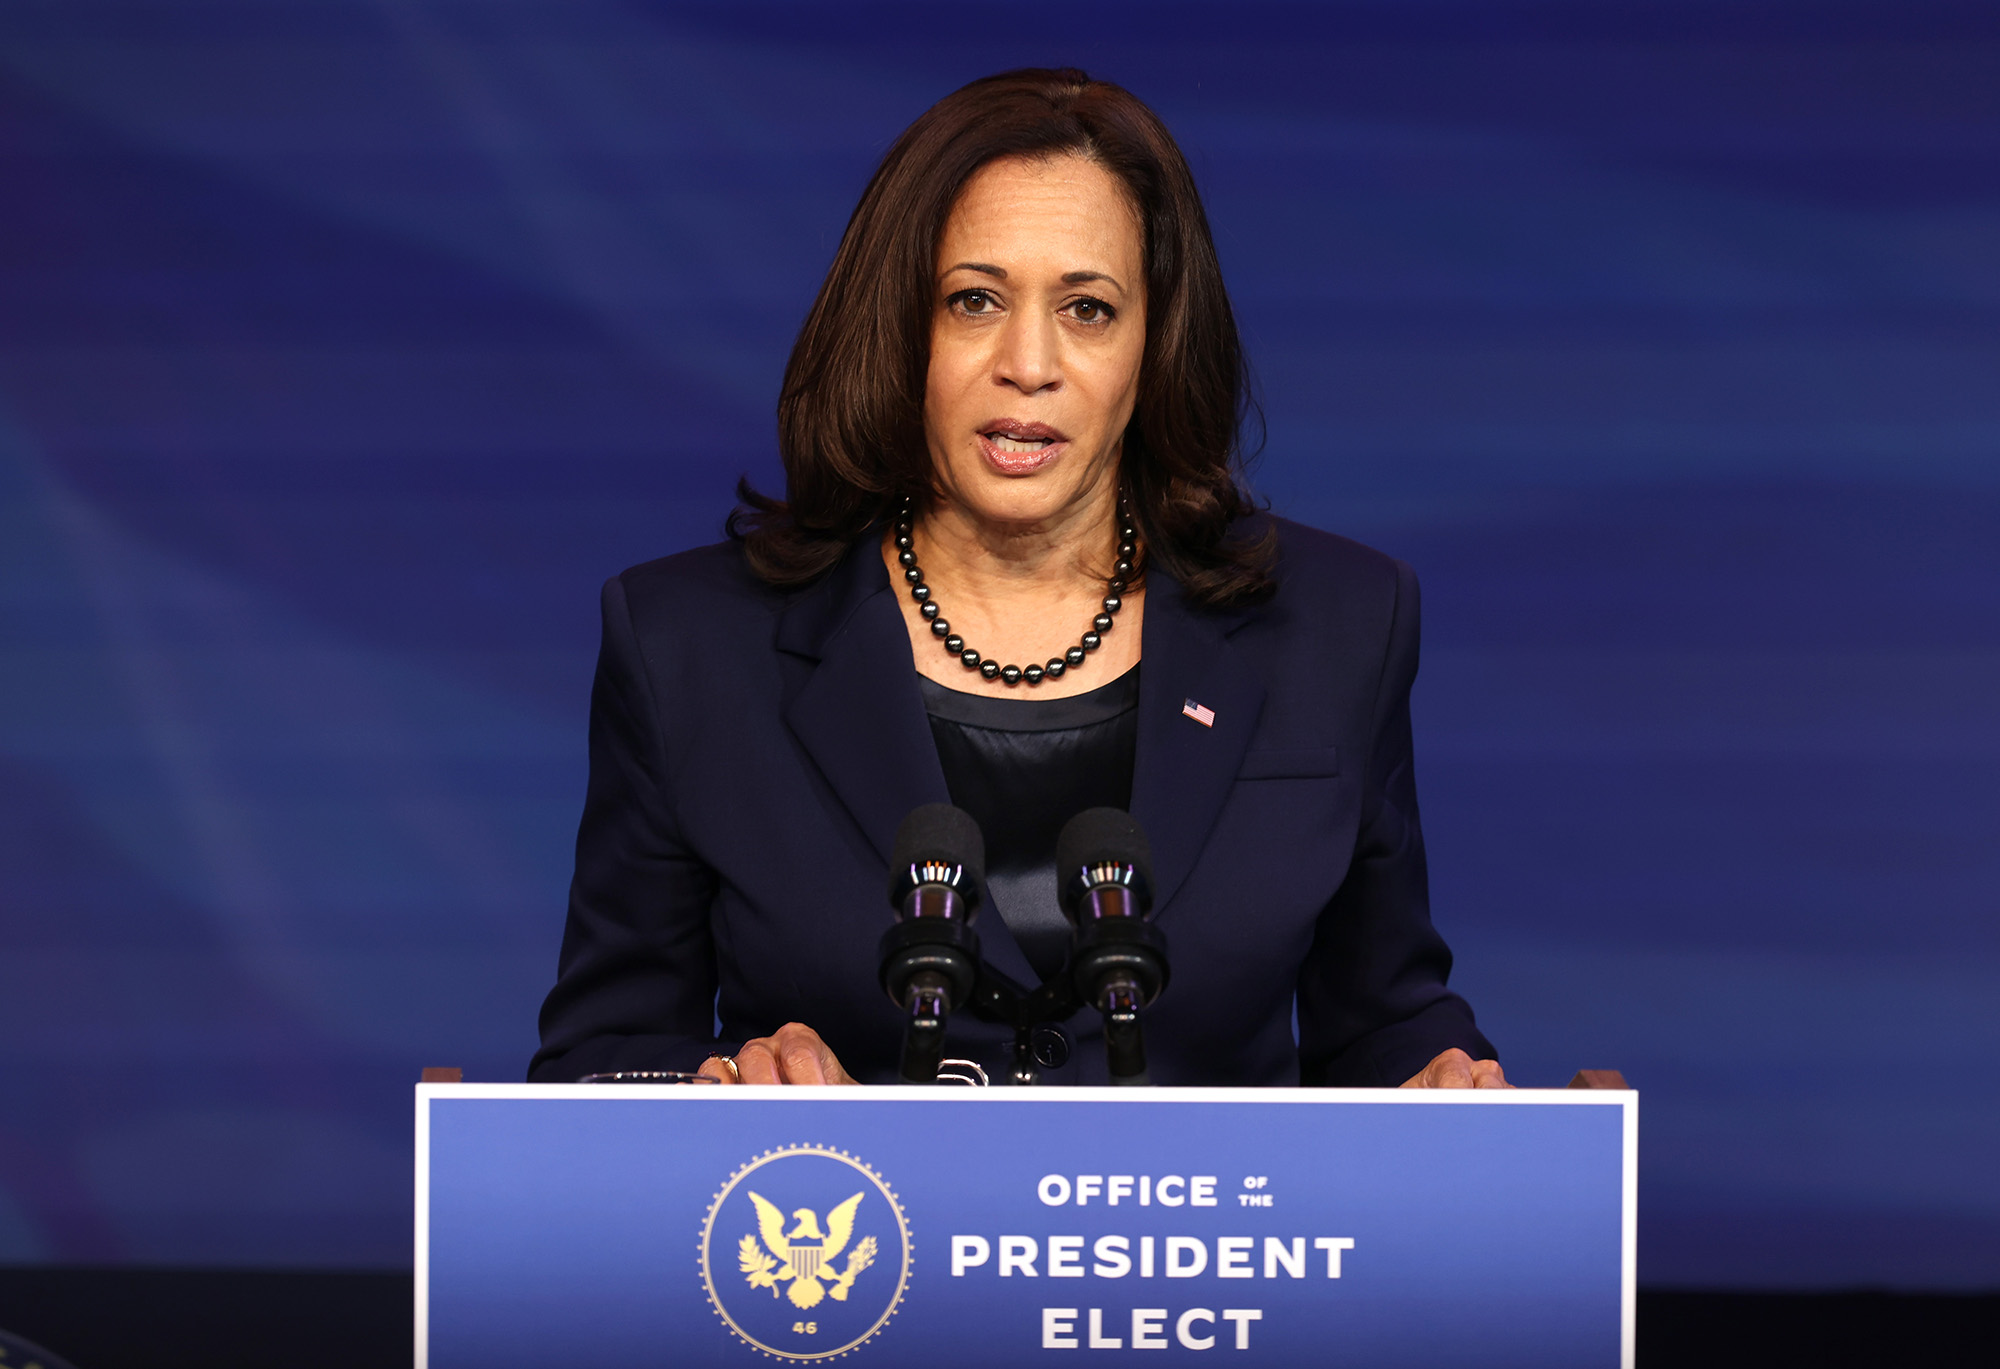 U.S. Vice President-elect Kamala Harris speaks during an event to announce new cabinet nominations at the Queen Theatre on December 11, in Wilmington, Delaware.